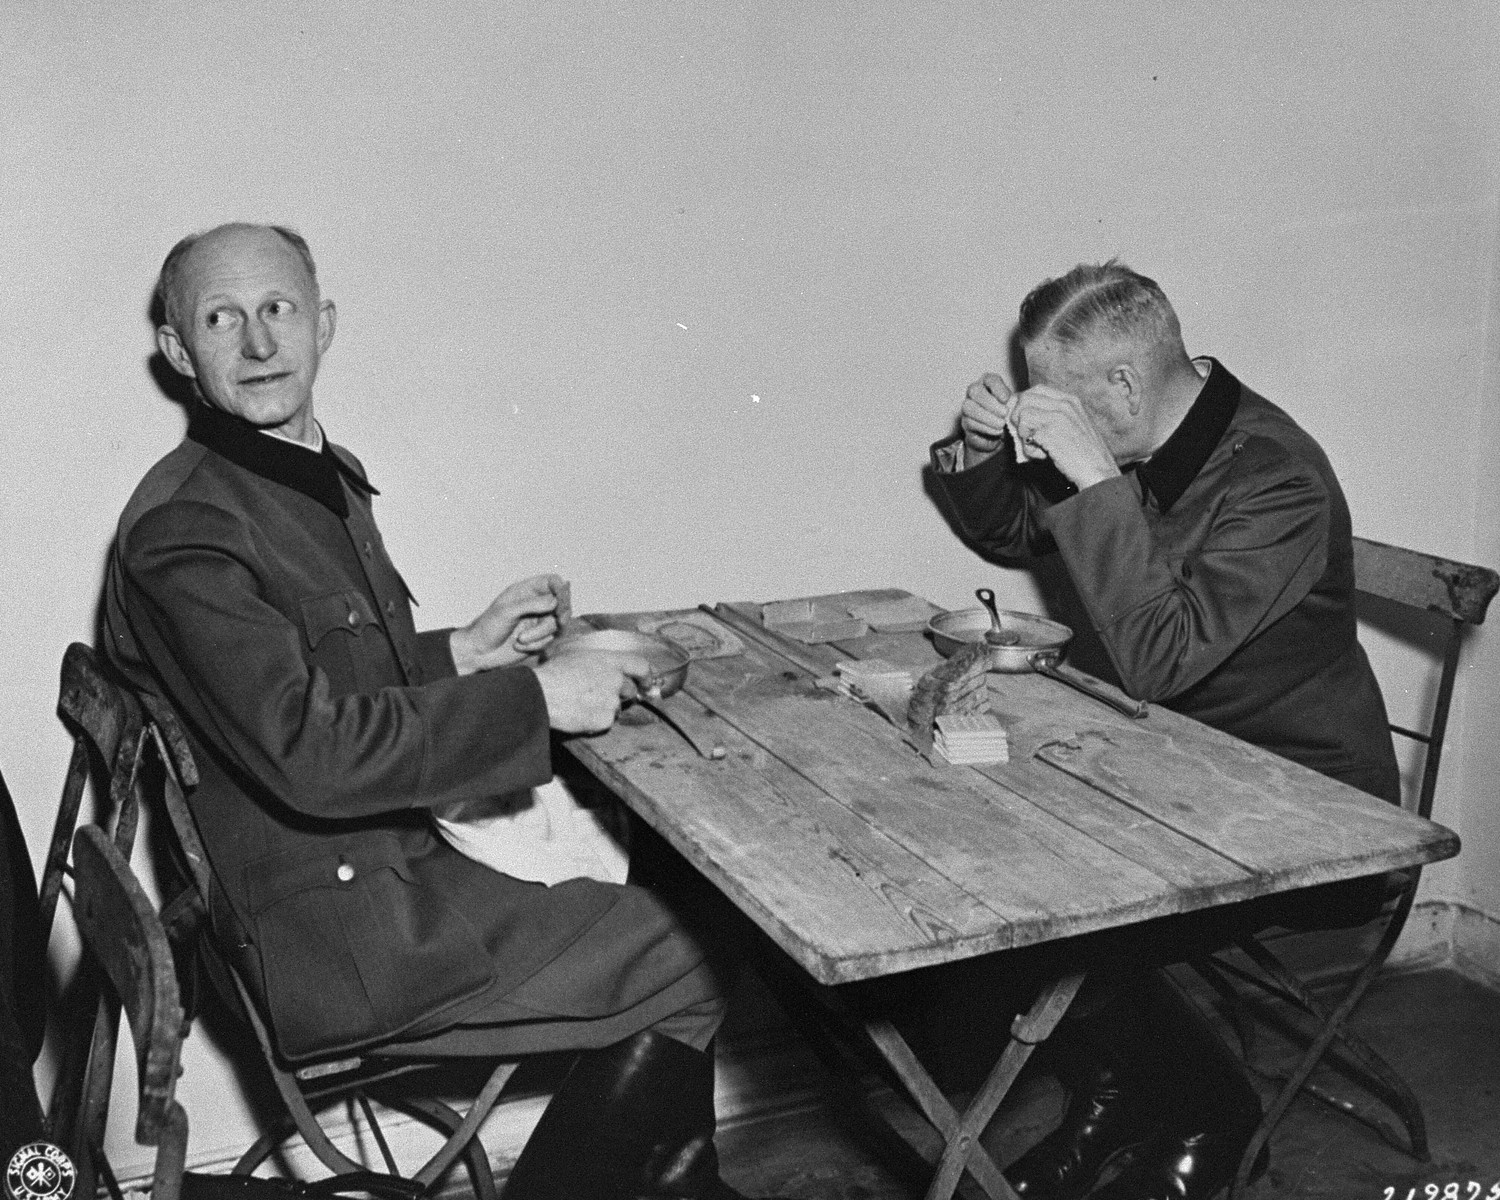 Defendants Alfred Jodl (left) and Wilhelm Keitel (right) eat in a makeshift dining room adjacent to the courtroom at the International Military Tribunal trial of war criminals at Nuremberg.